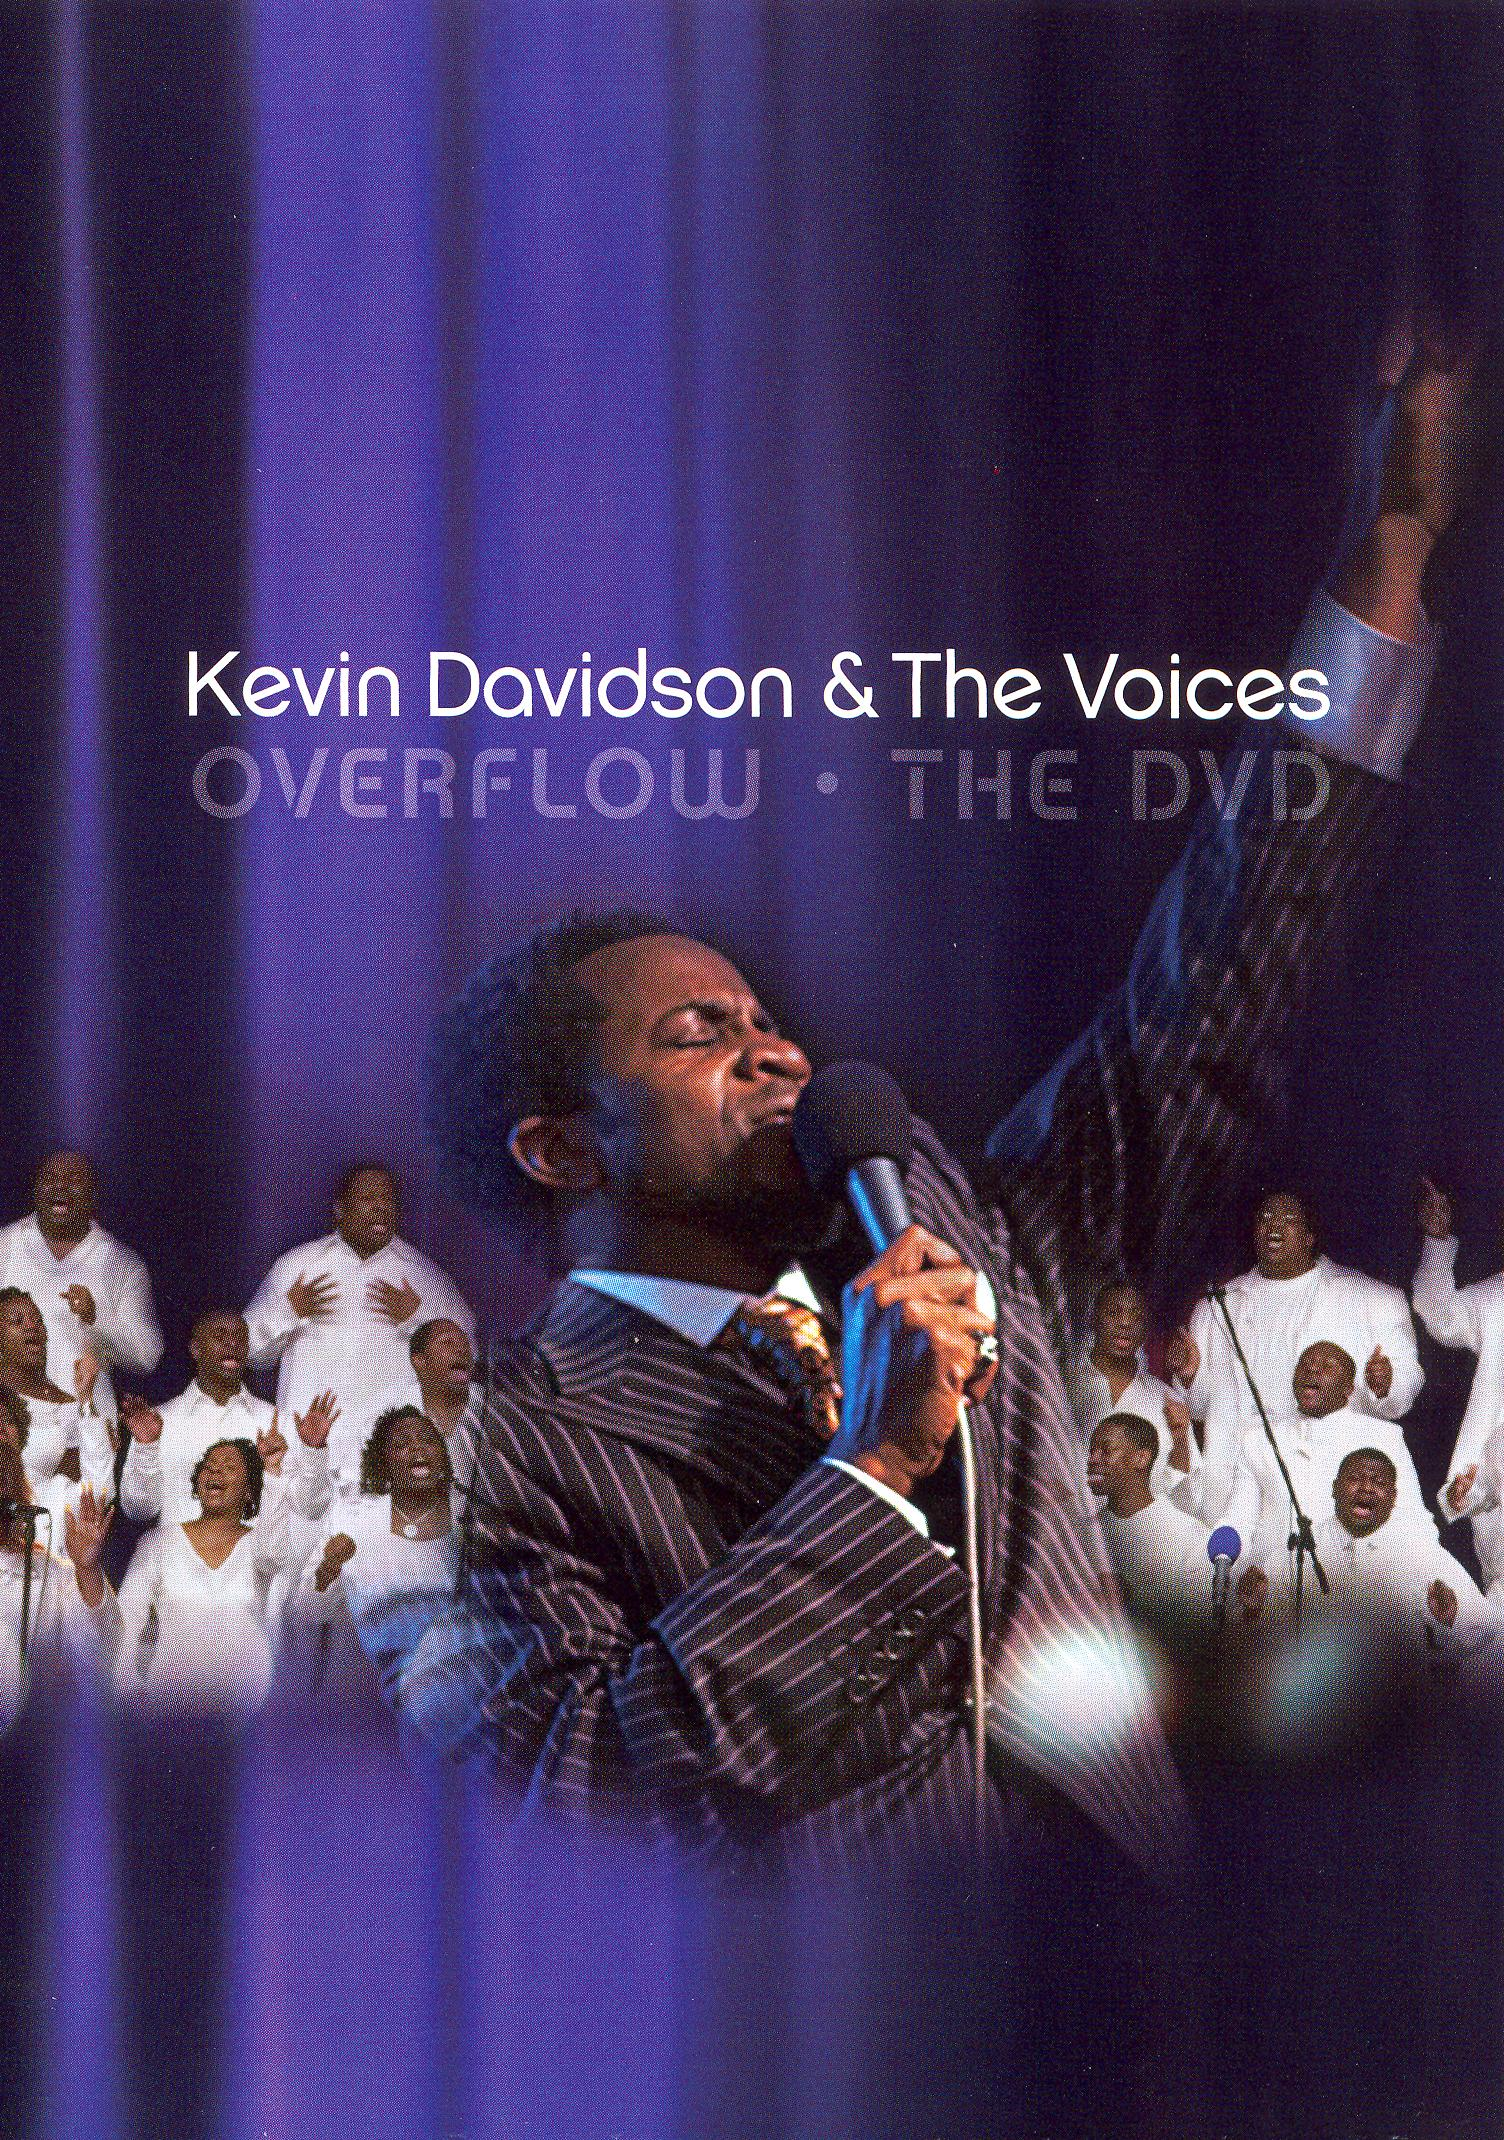 Kevin Davidson and the Voices: Overflow - The DVD